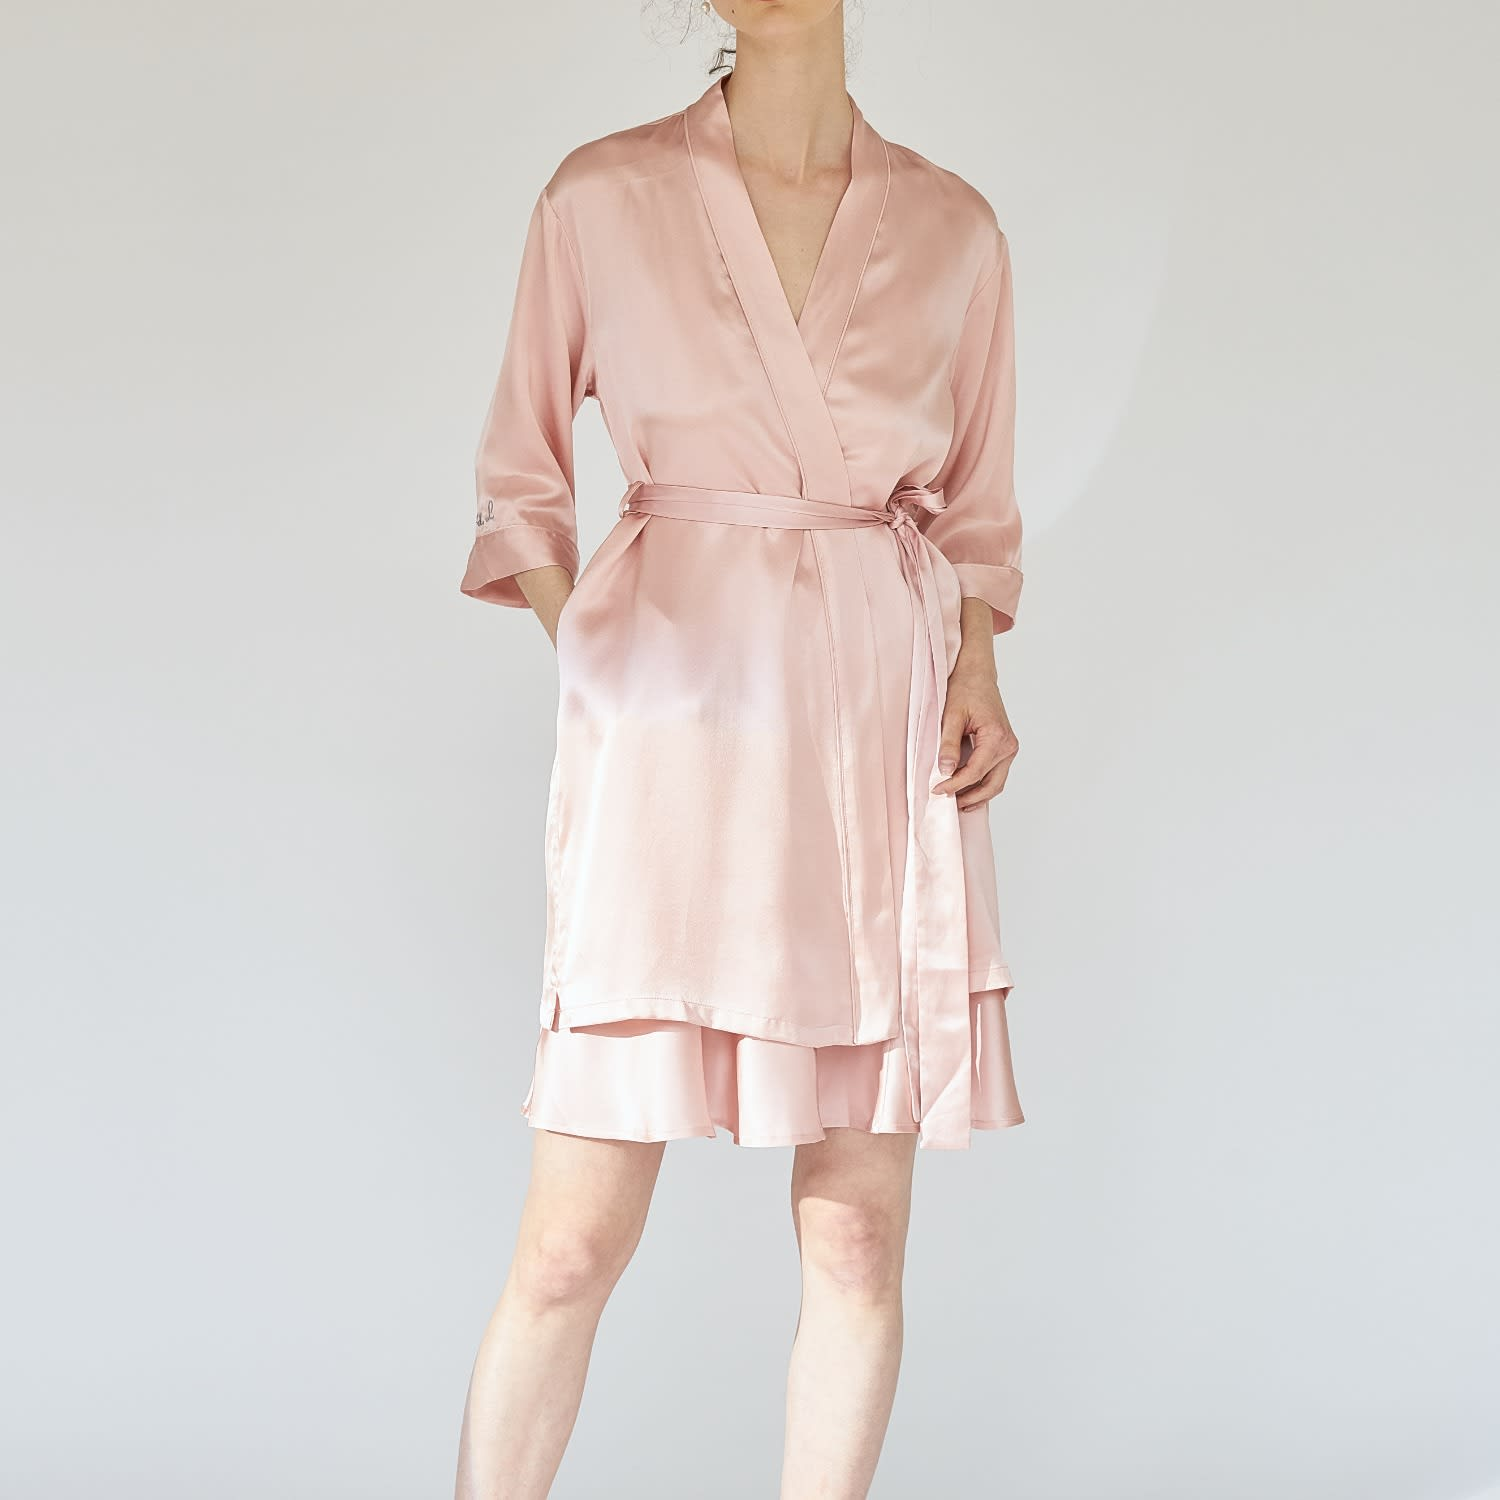 Silk Wedding Robe Pink Not Just Pajama Wolf Badger